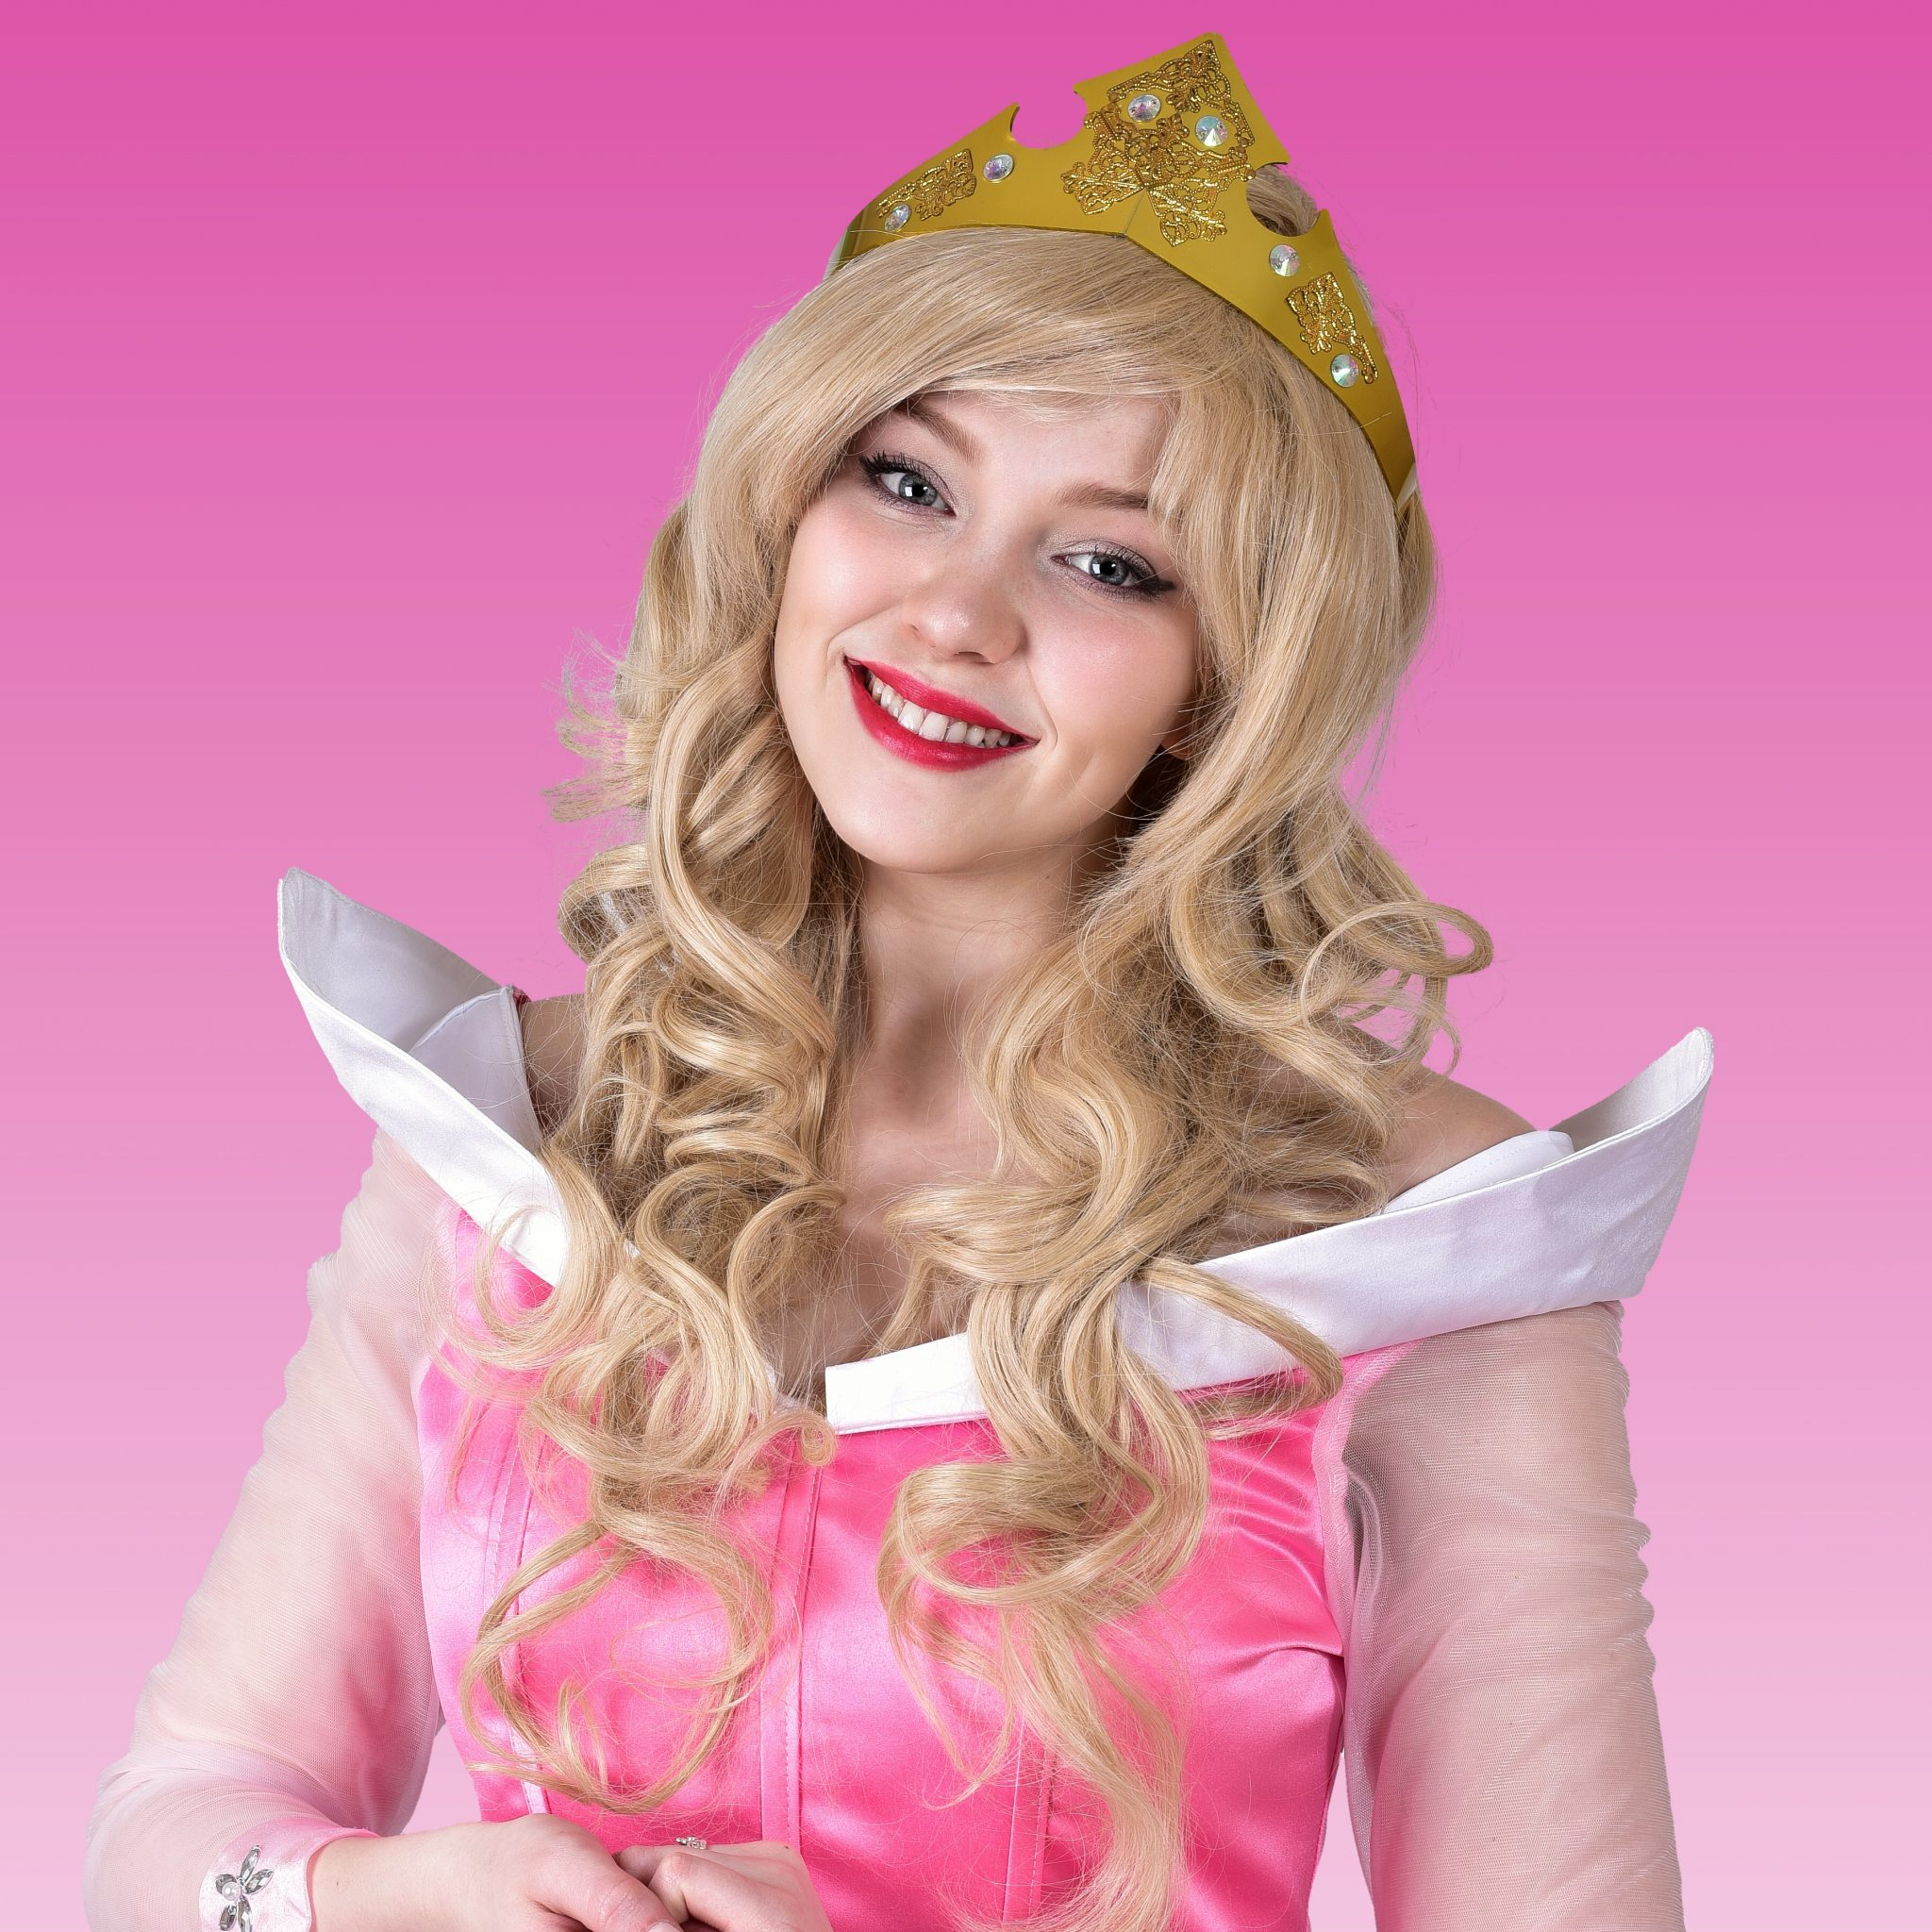 Sleeping Beauty Princess Entertainer